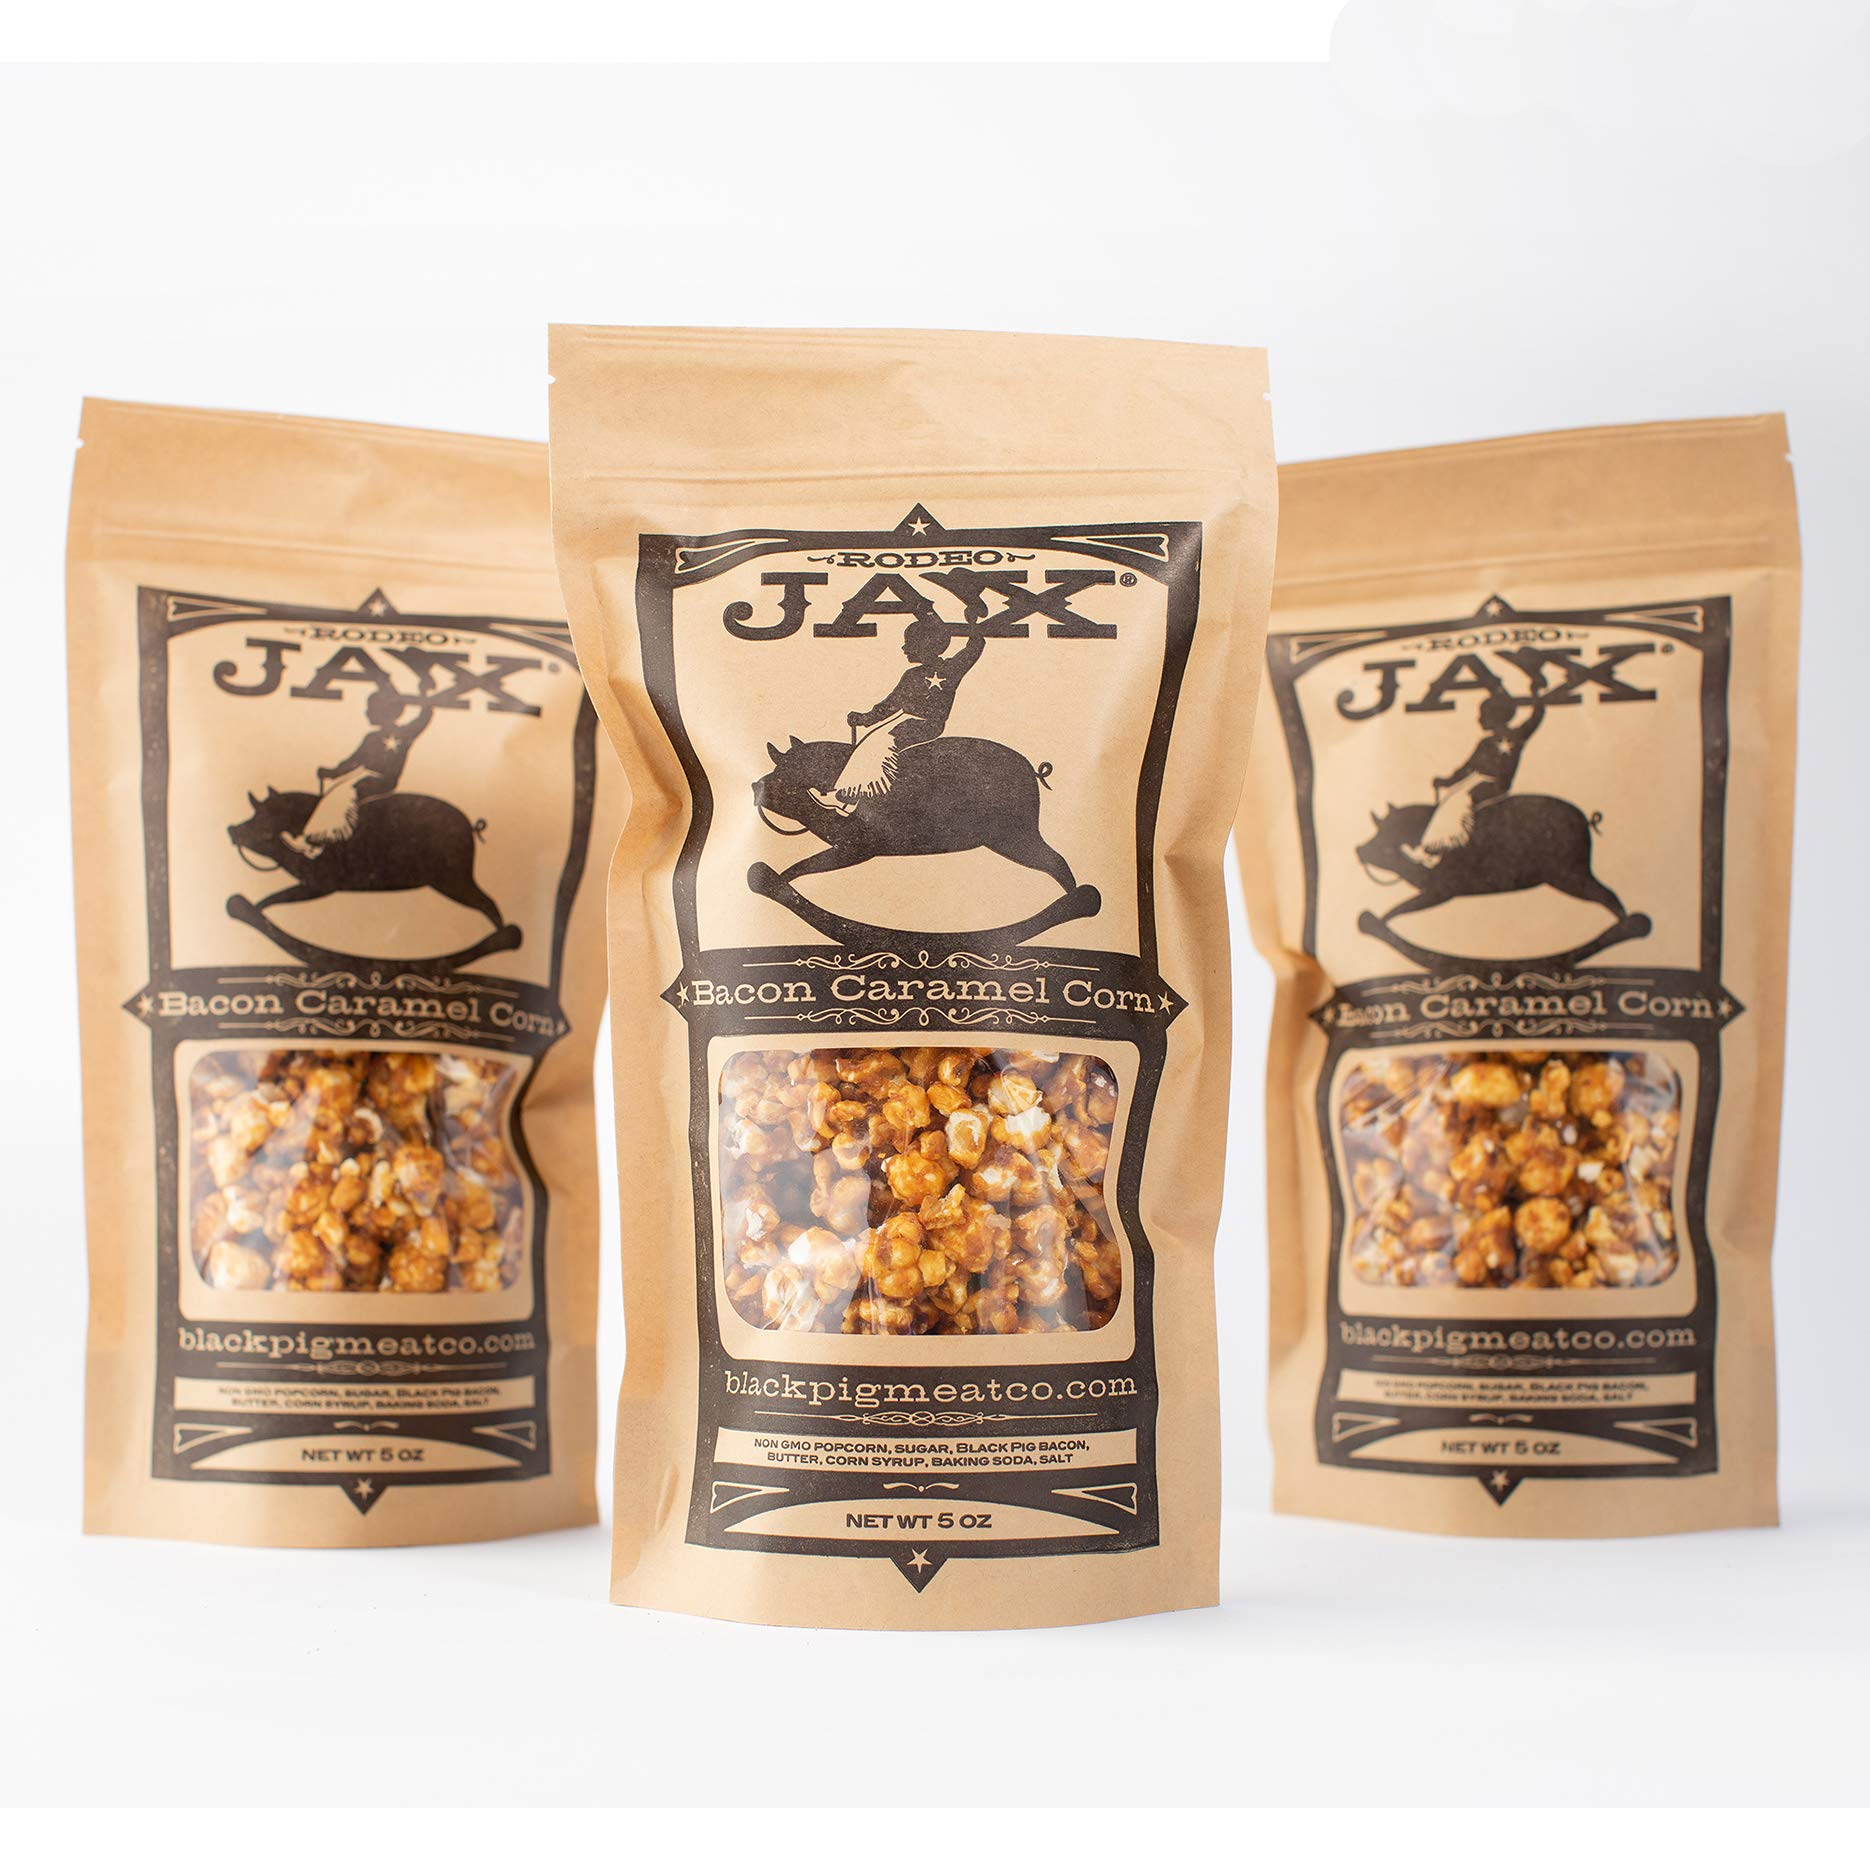 Bacon Caramel Corn - Black Pig Meat Co. Rodeo Jax by Black Pig Meat Co.